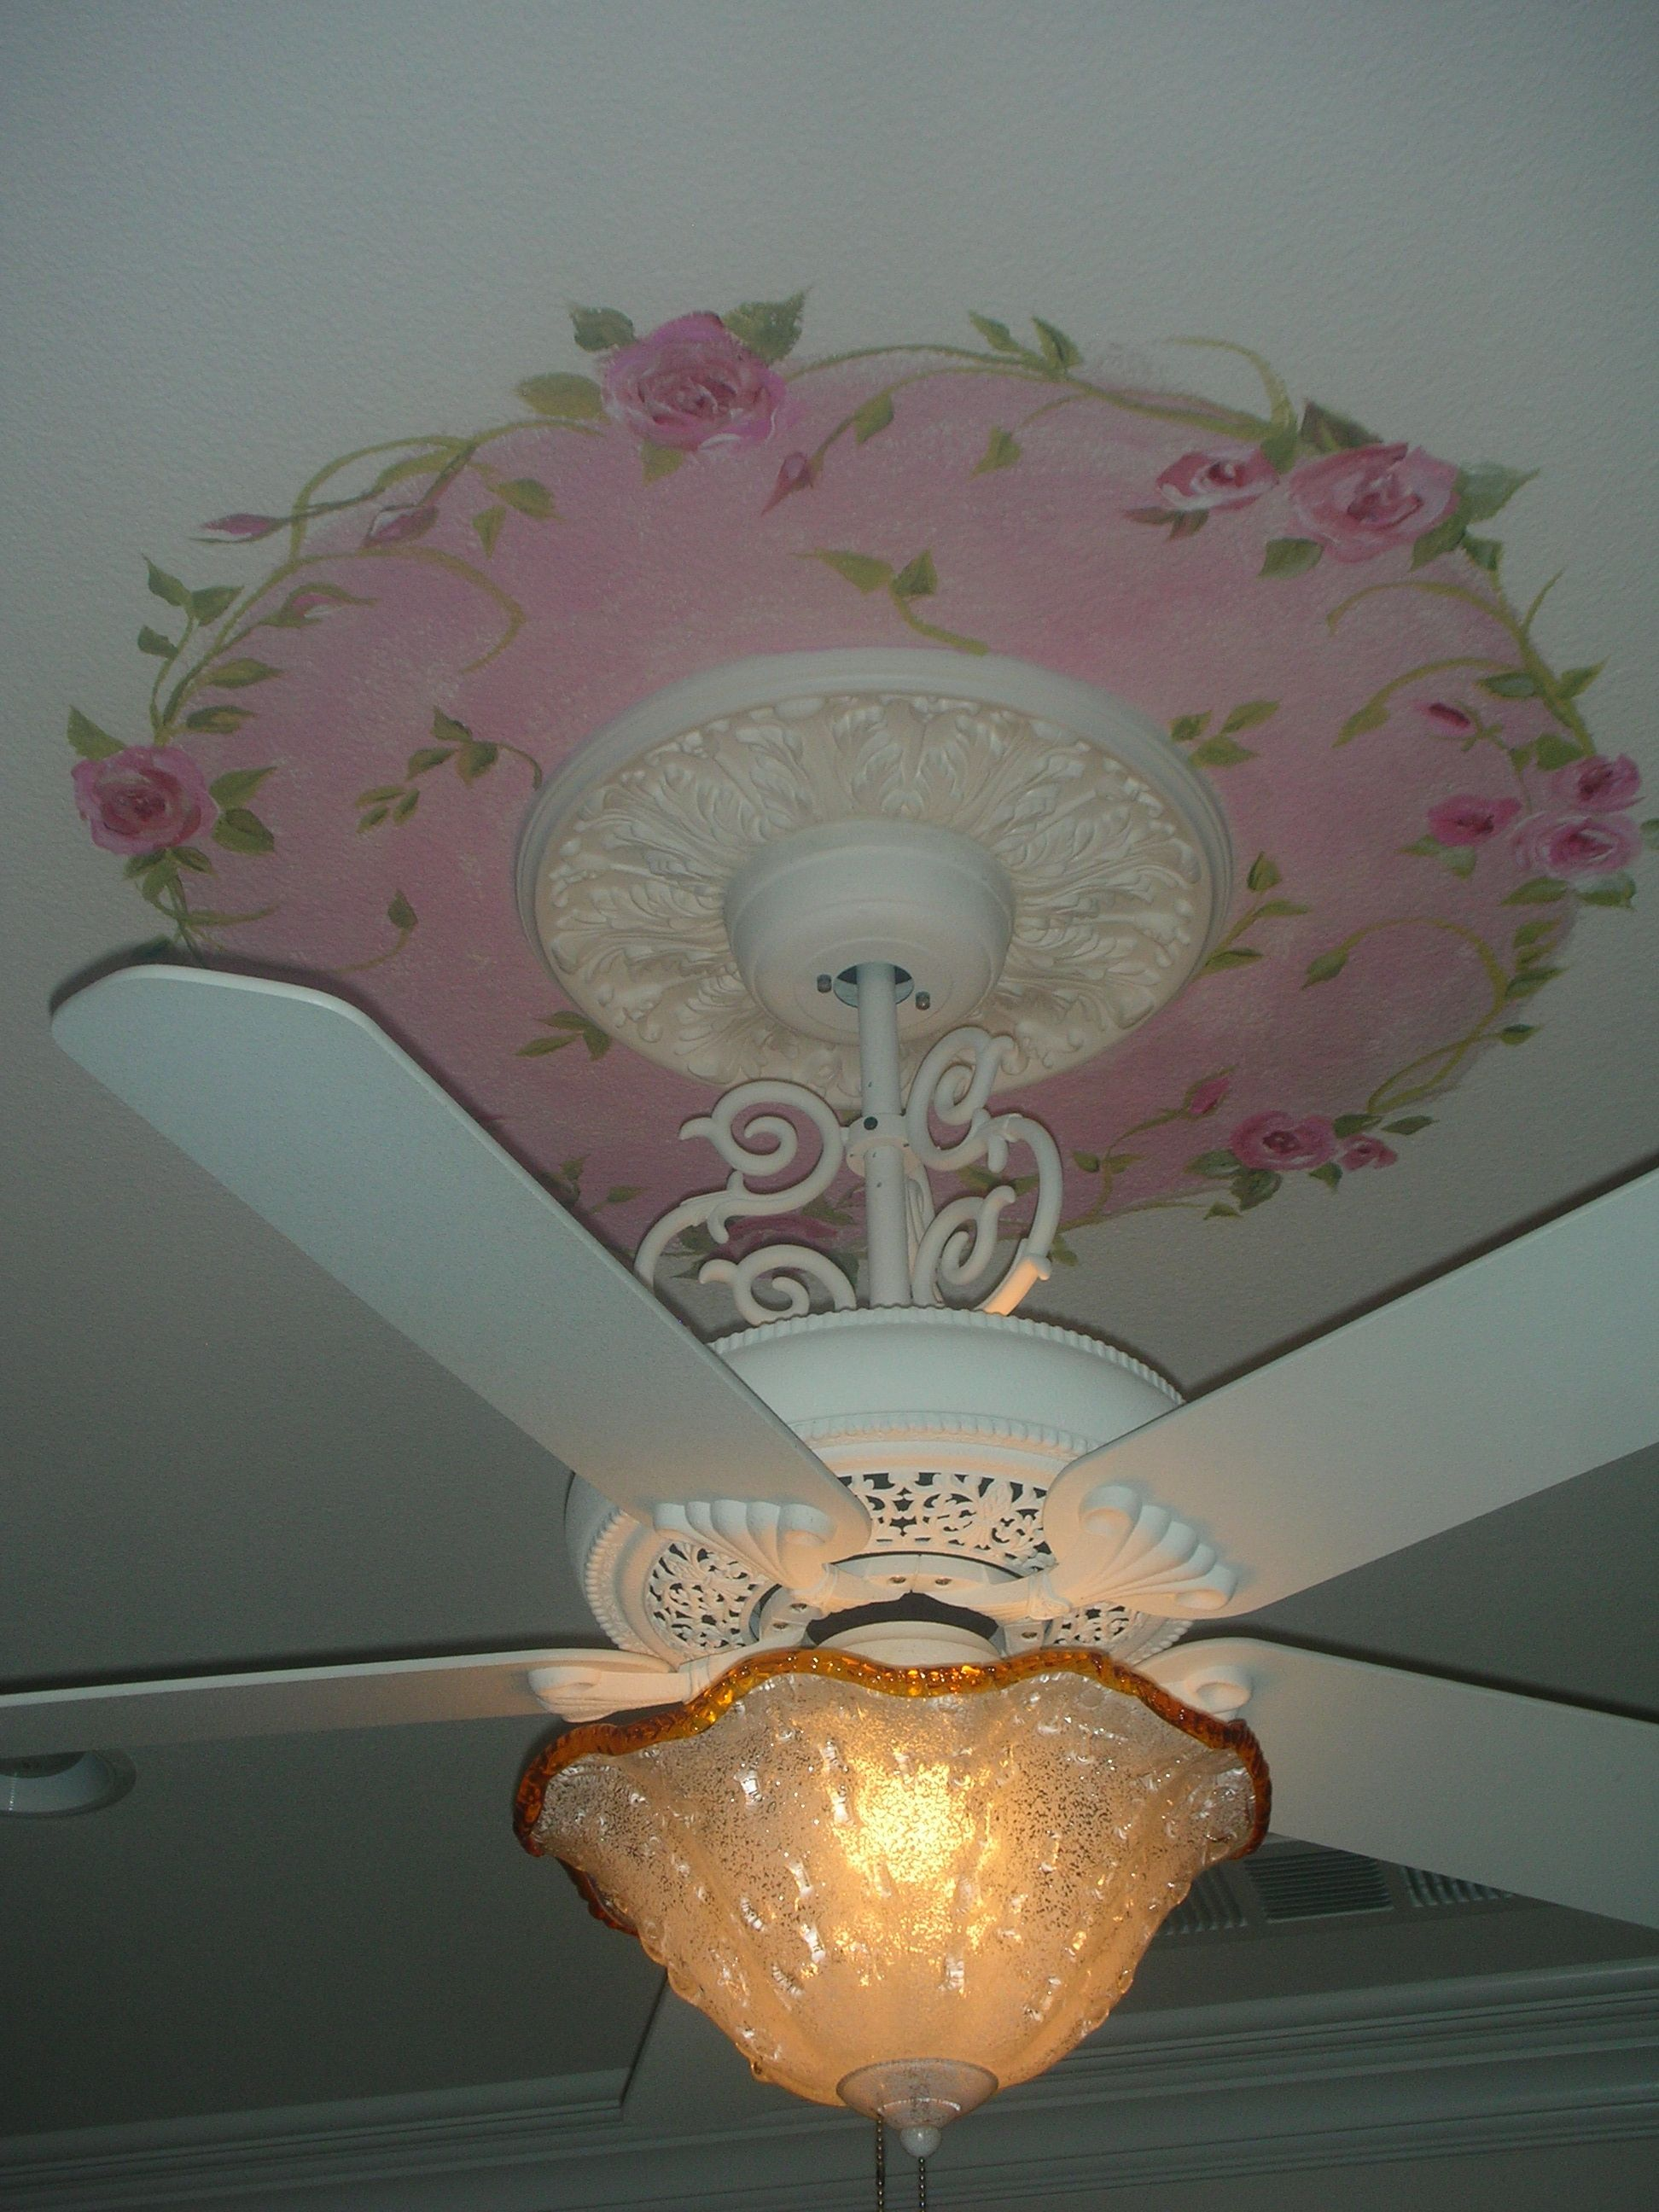 hand painted roses with green vines on ceiling. white victorian